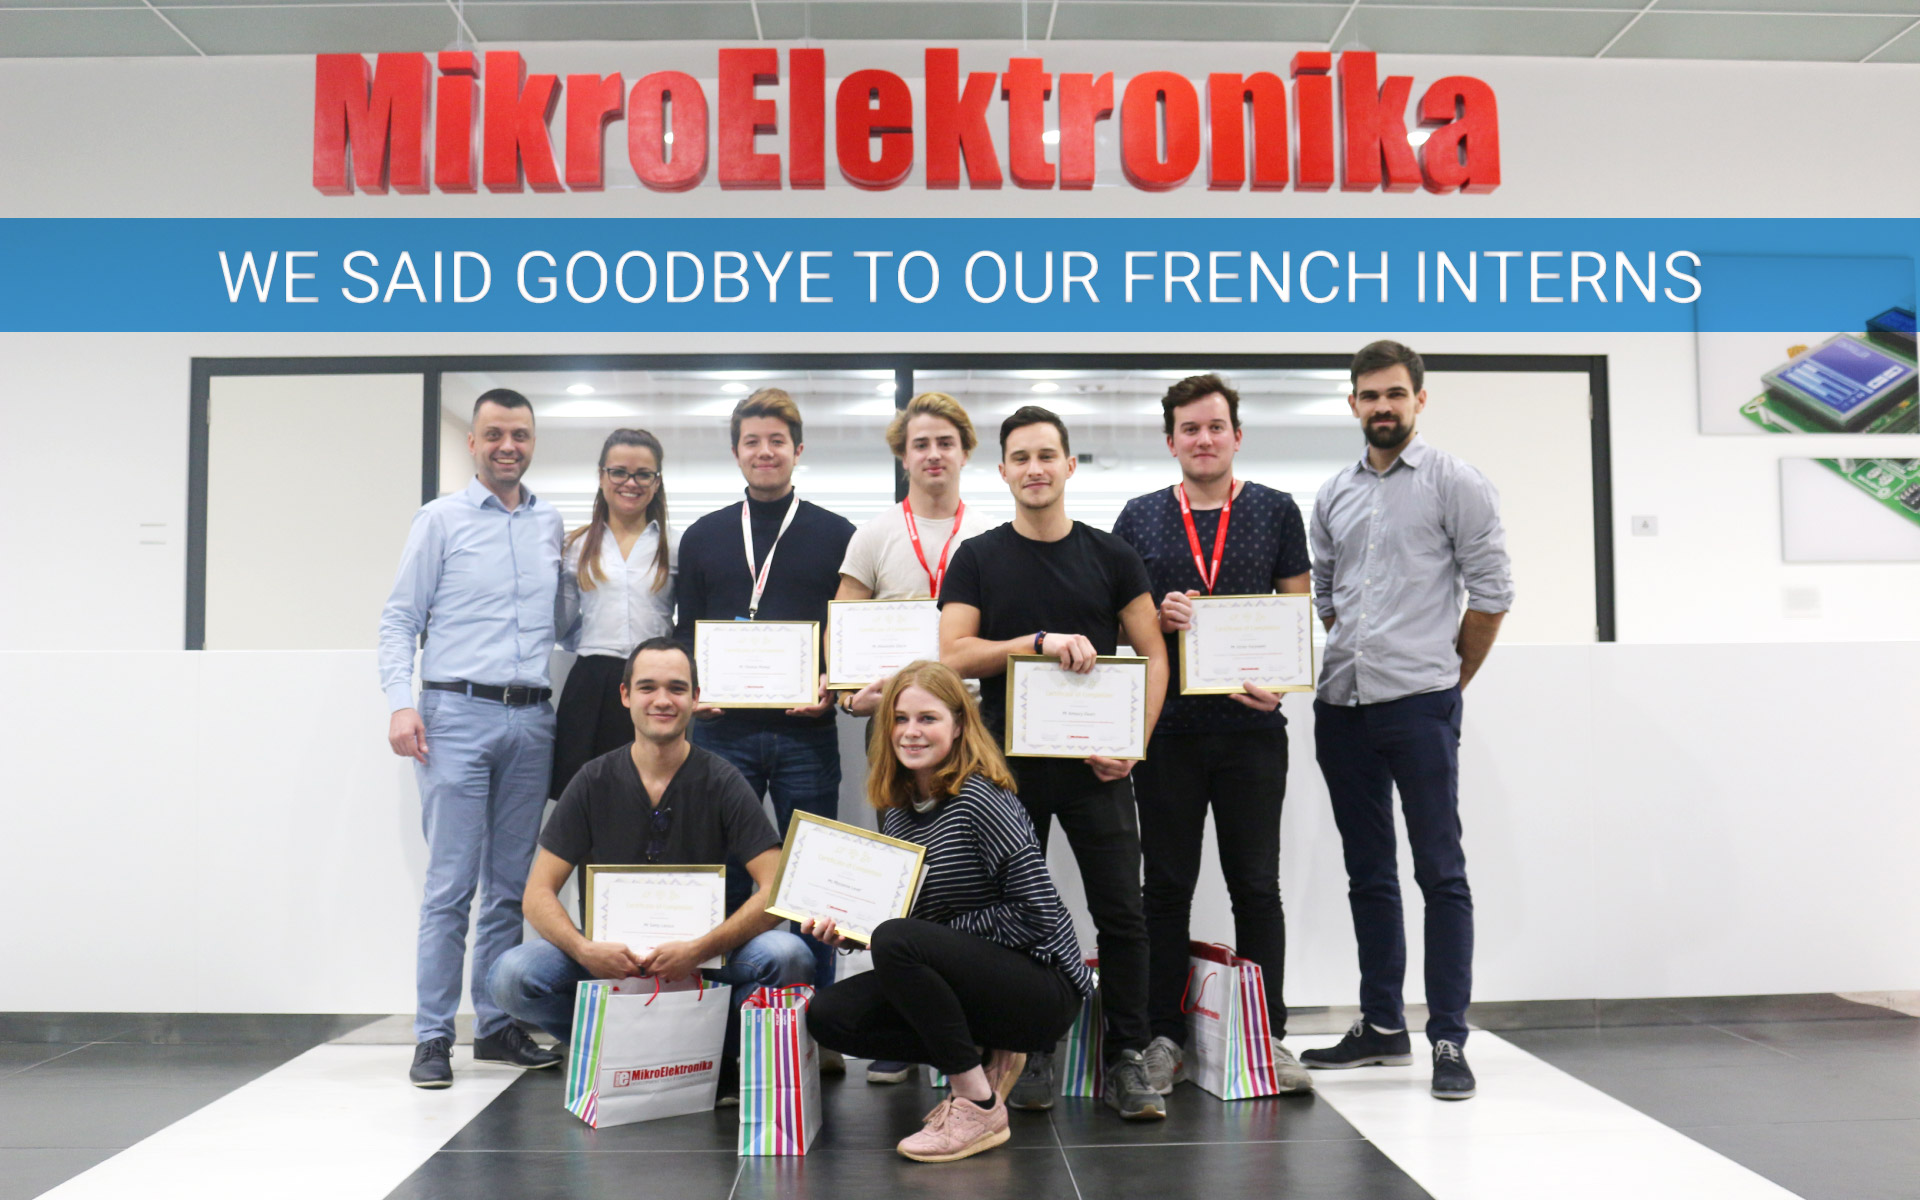 We said goodbye to our French interns